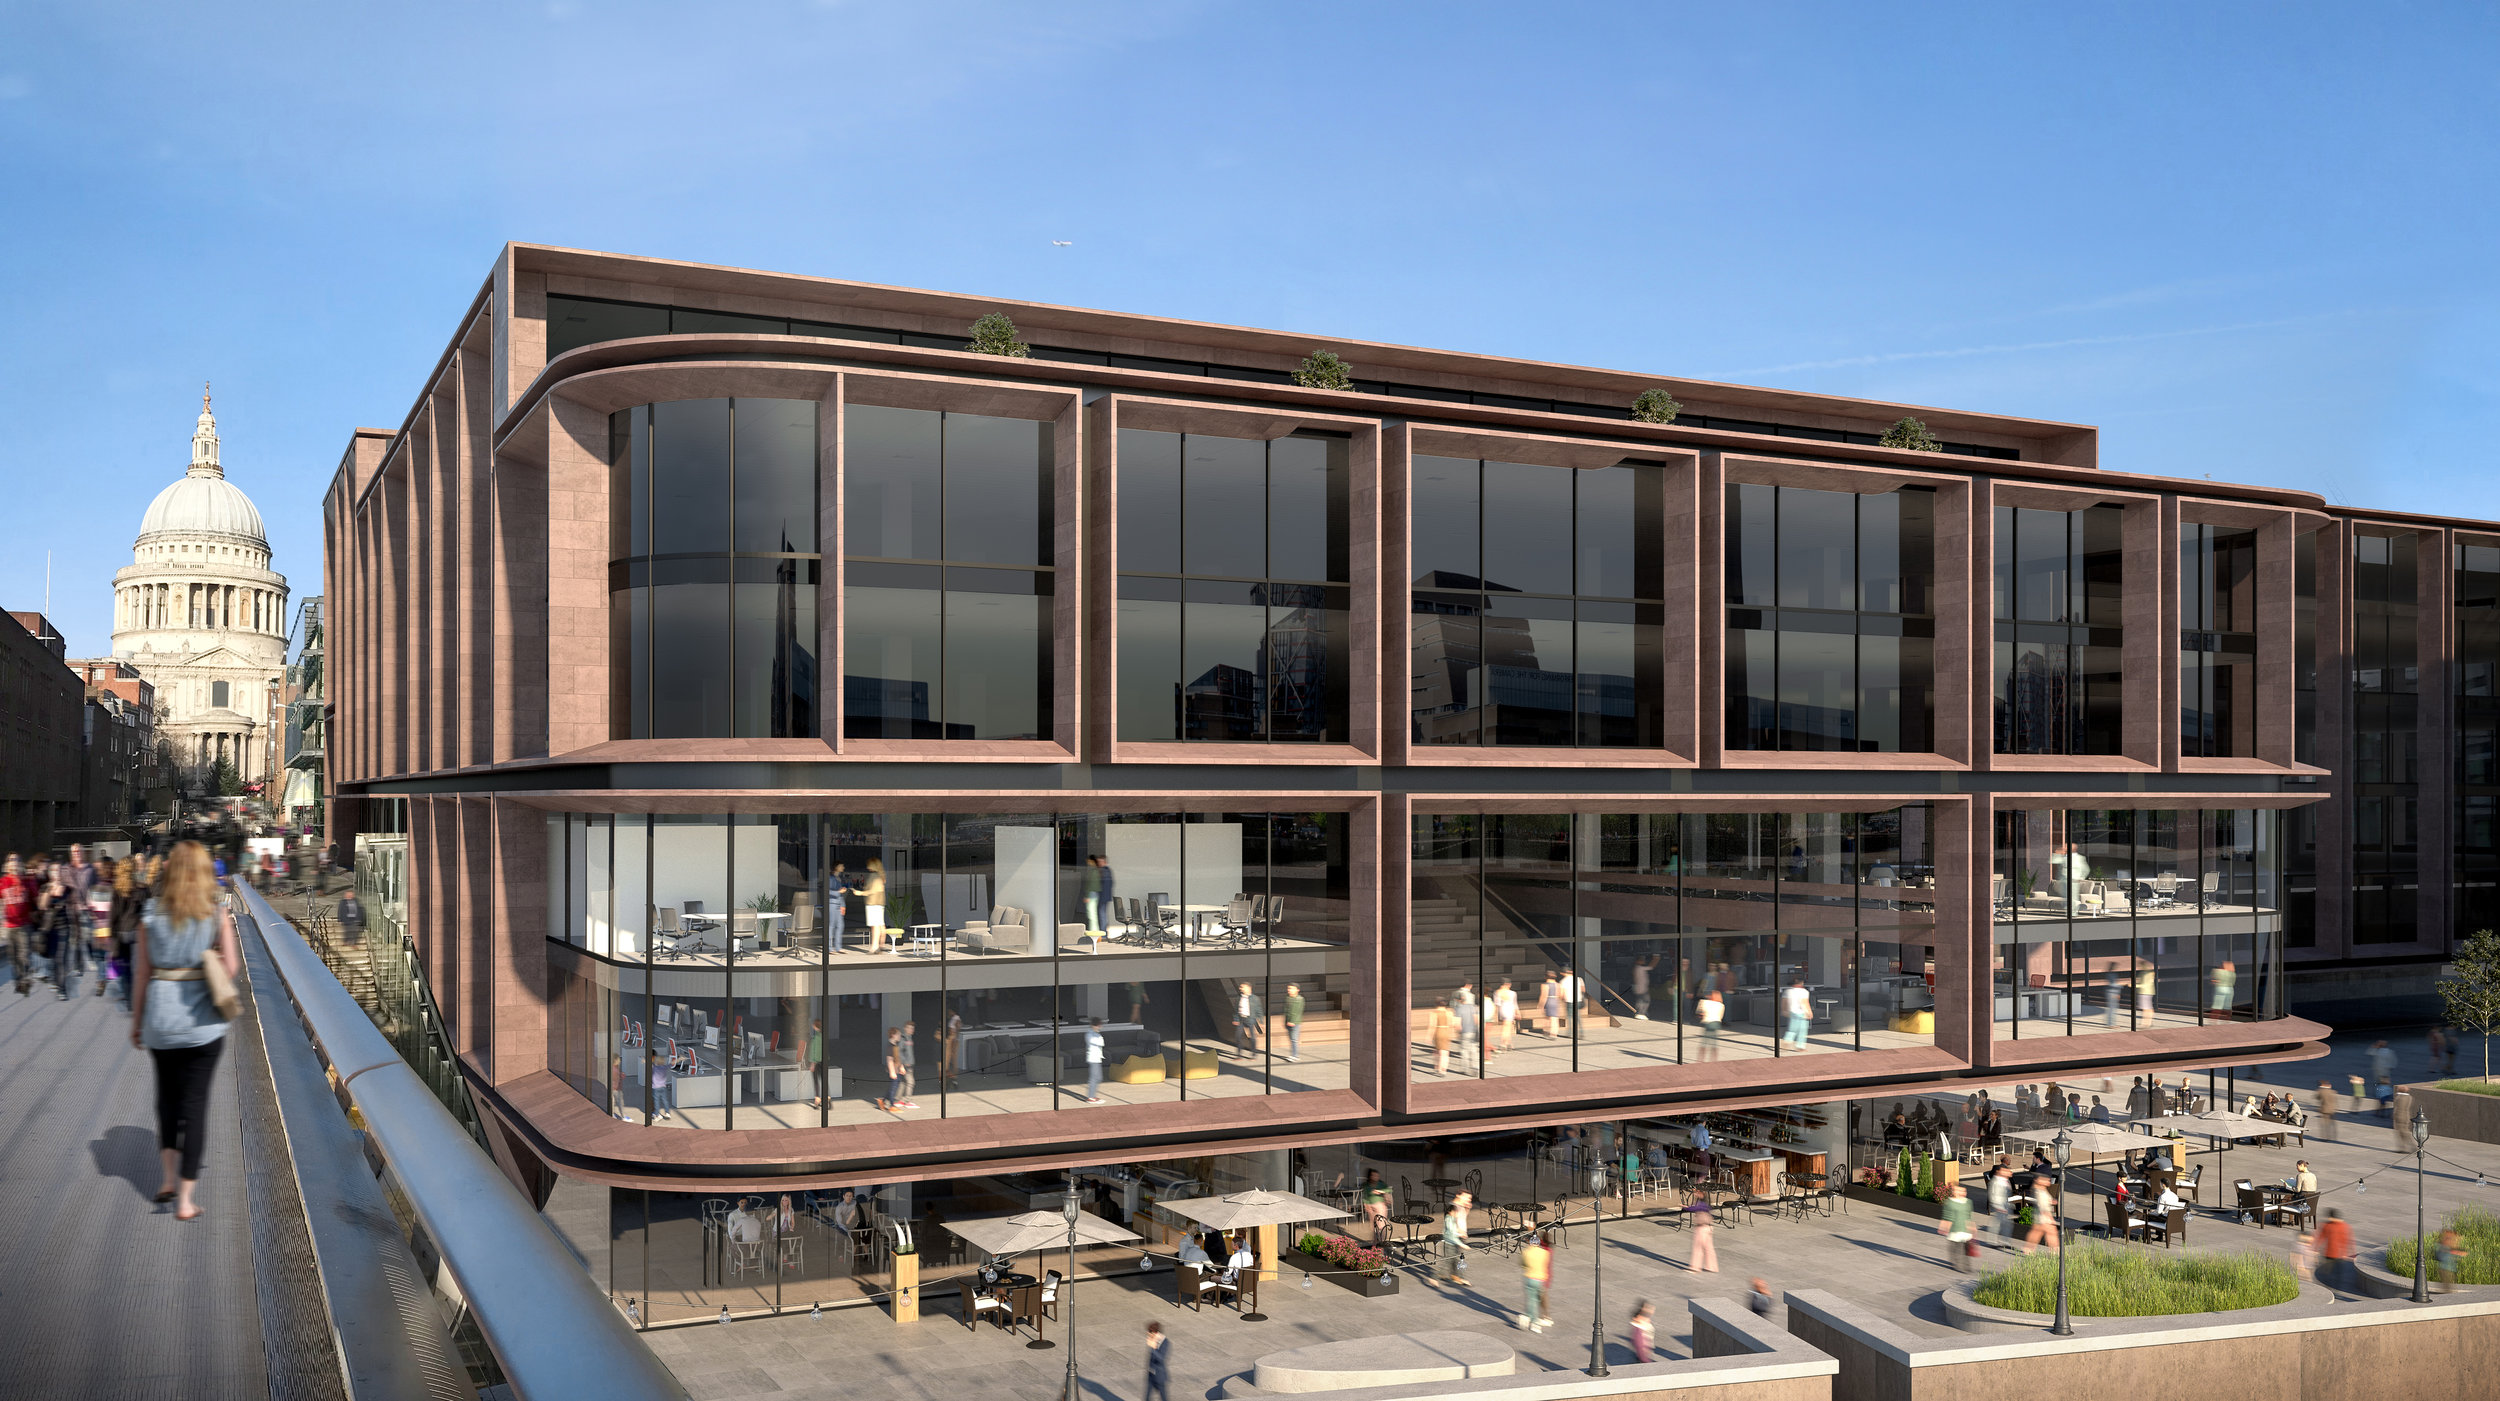 A new restaurant is proposed at the base of Millennium Bridge House, opening up the use and access of the building to the public and providing a lively amenity along the northern bank of the Thames.